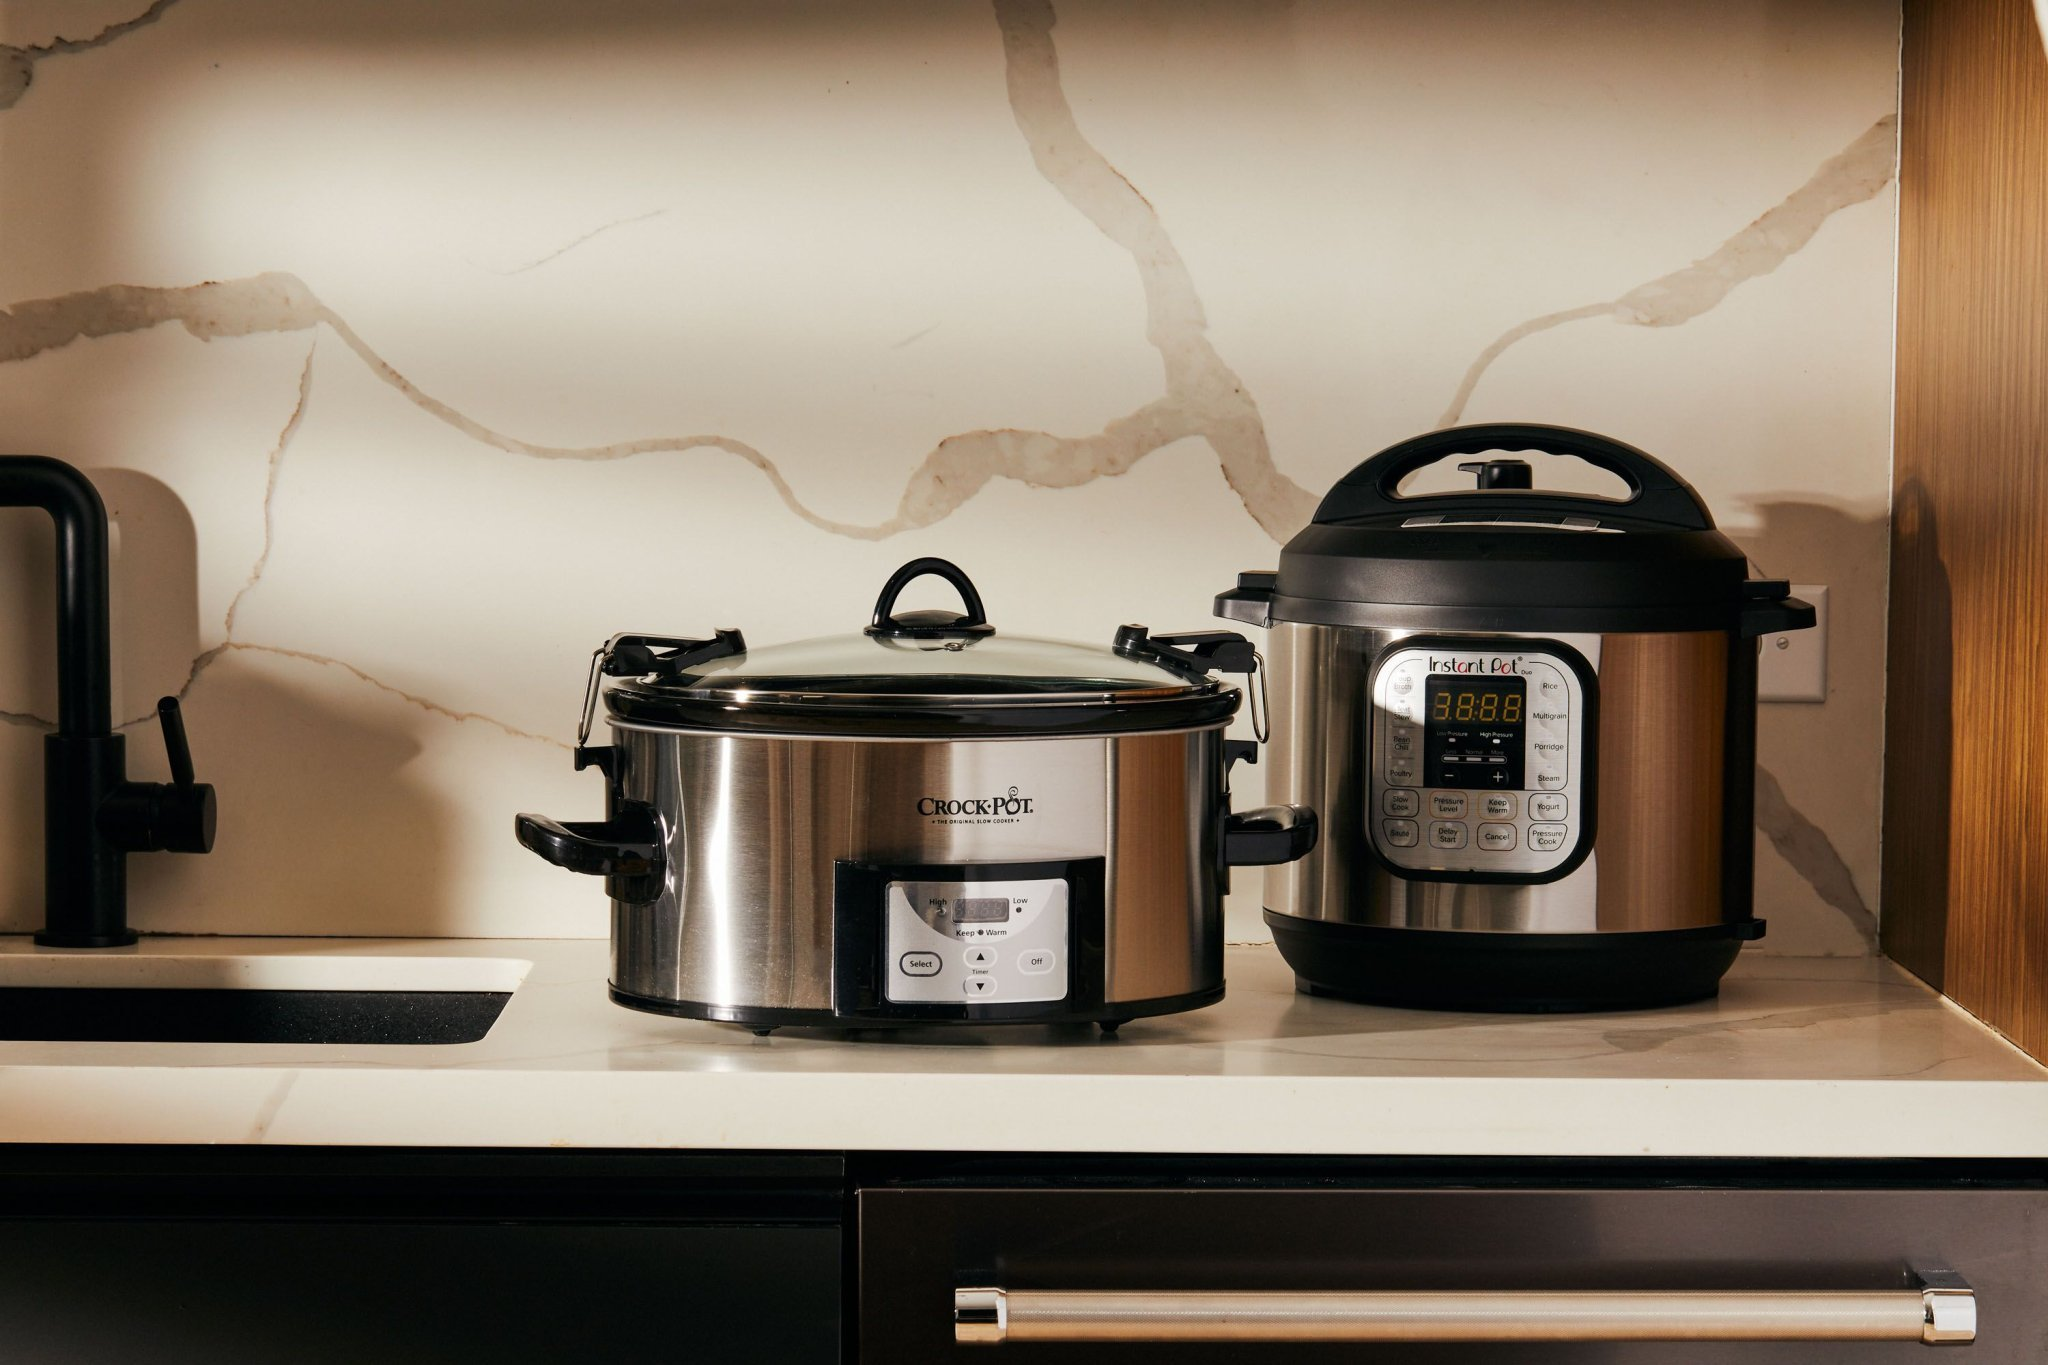 Instant Pot vs Crock-Pot: Which Is Better for You?